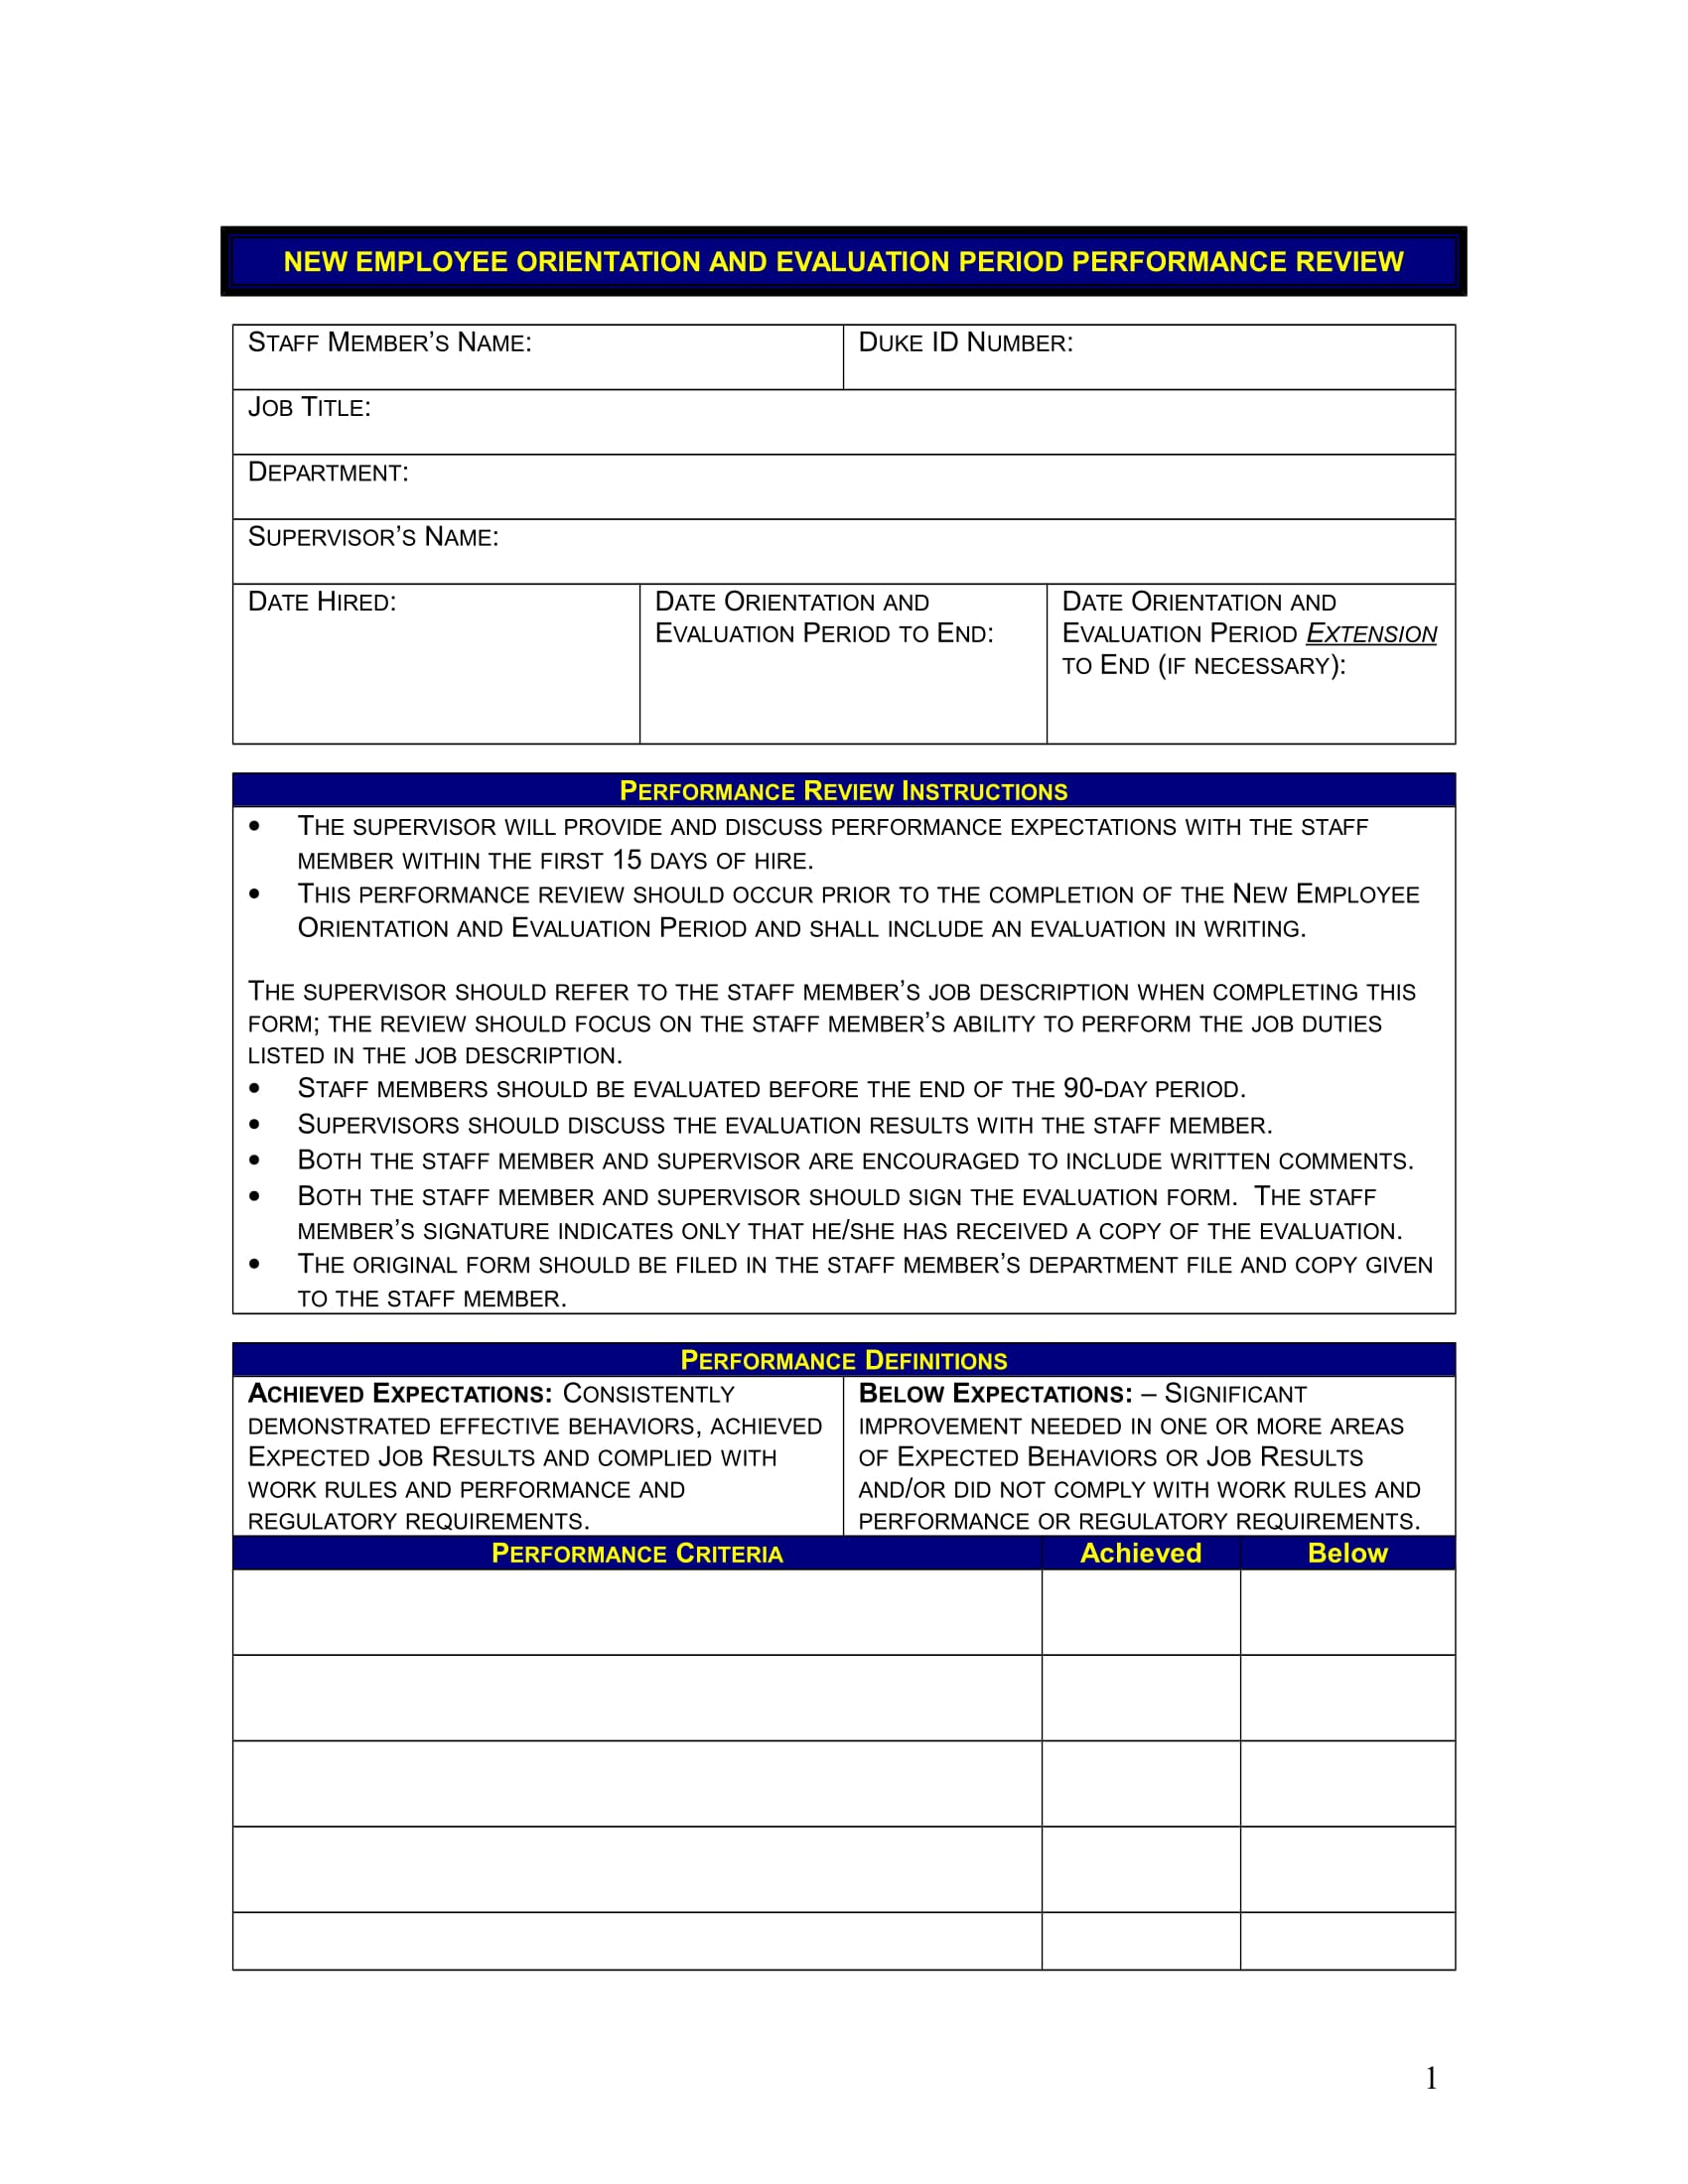 free employee evaluation form templates